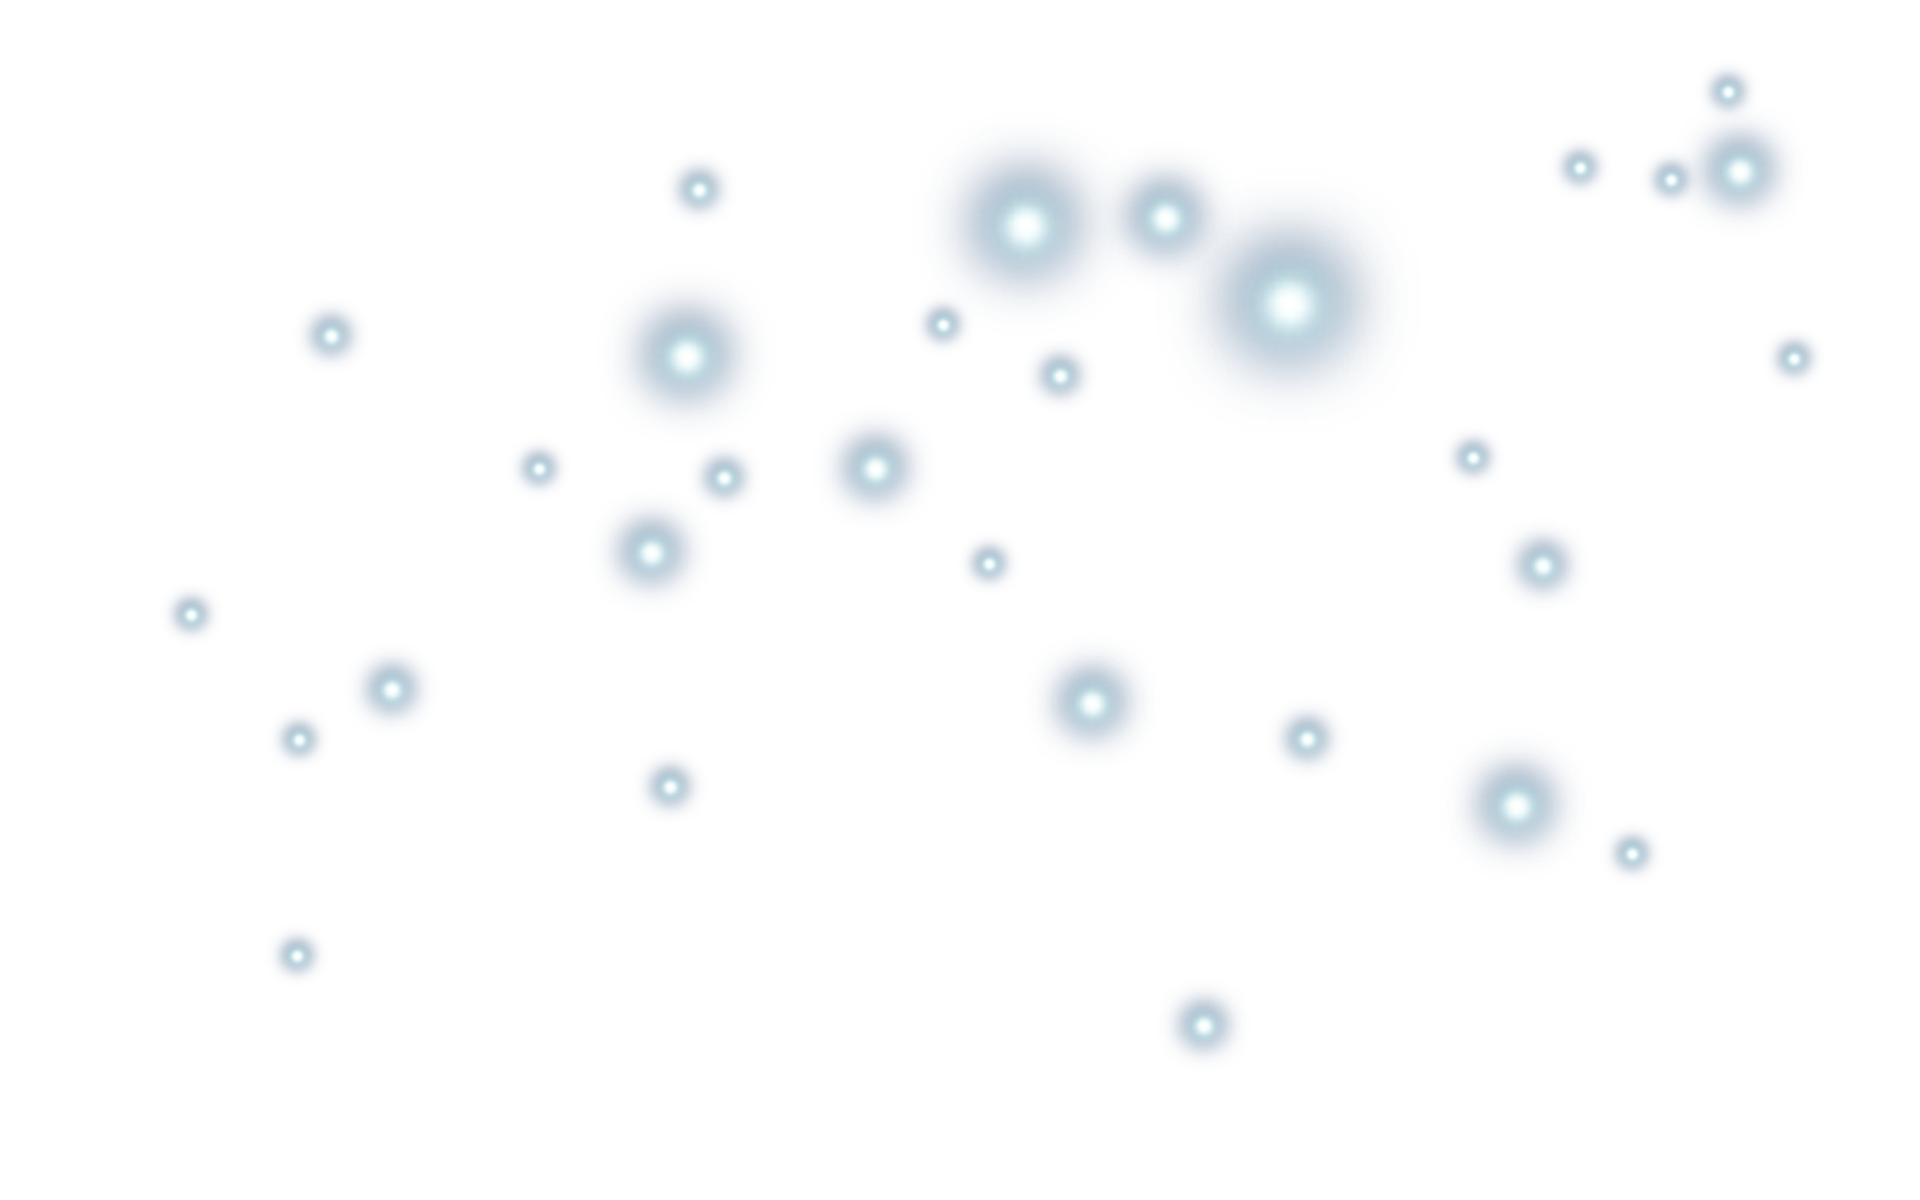 Stelle png 4 » PNG Image.